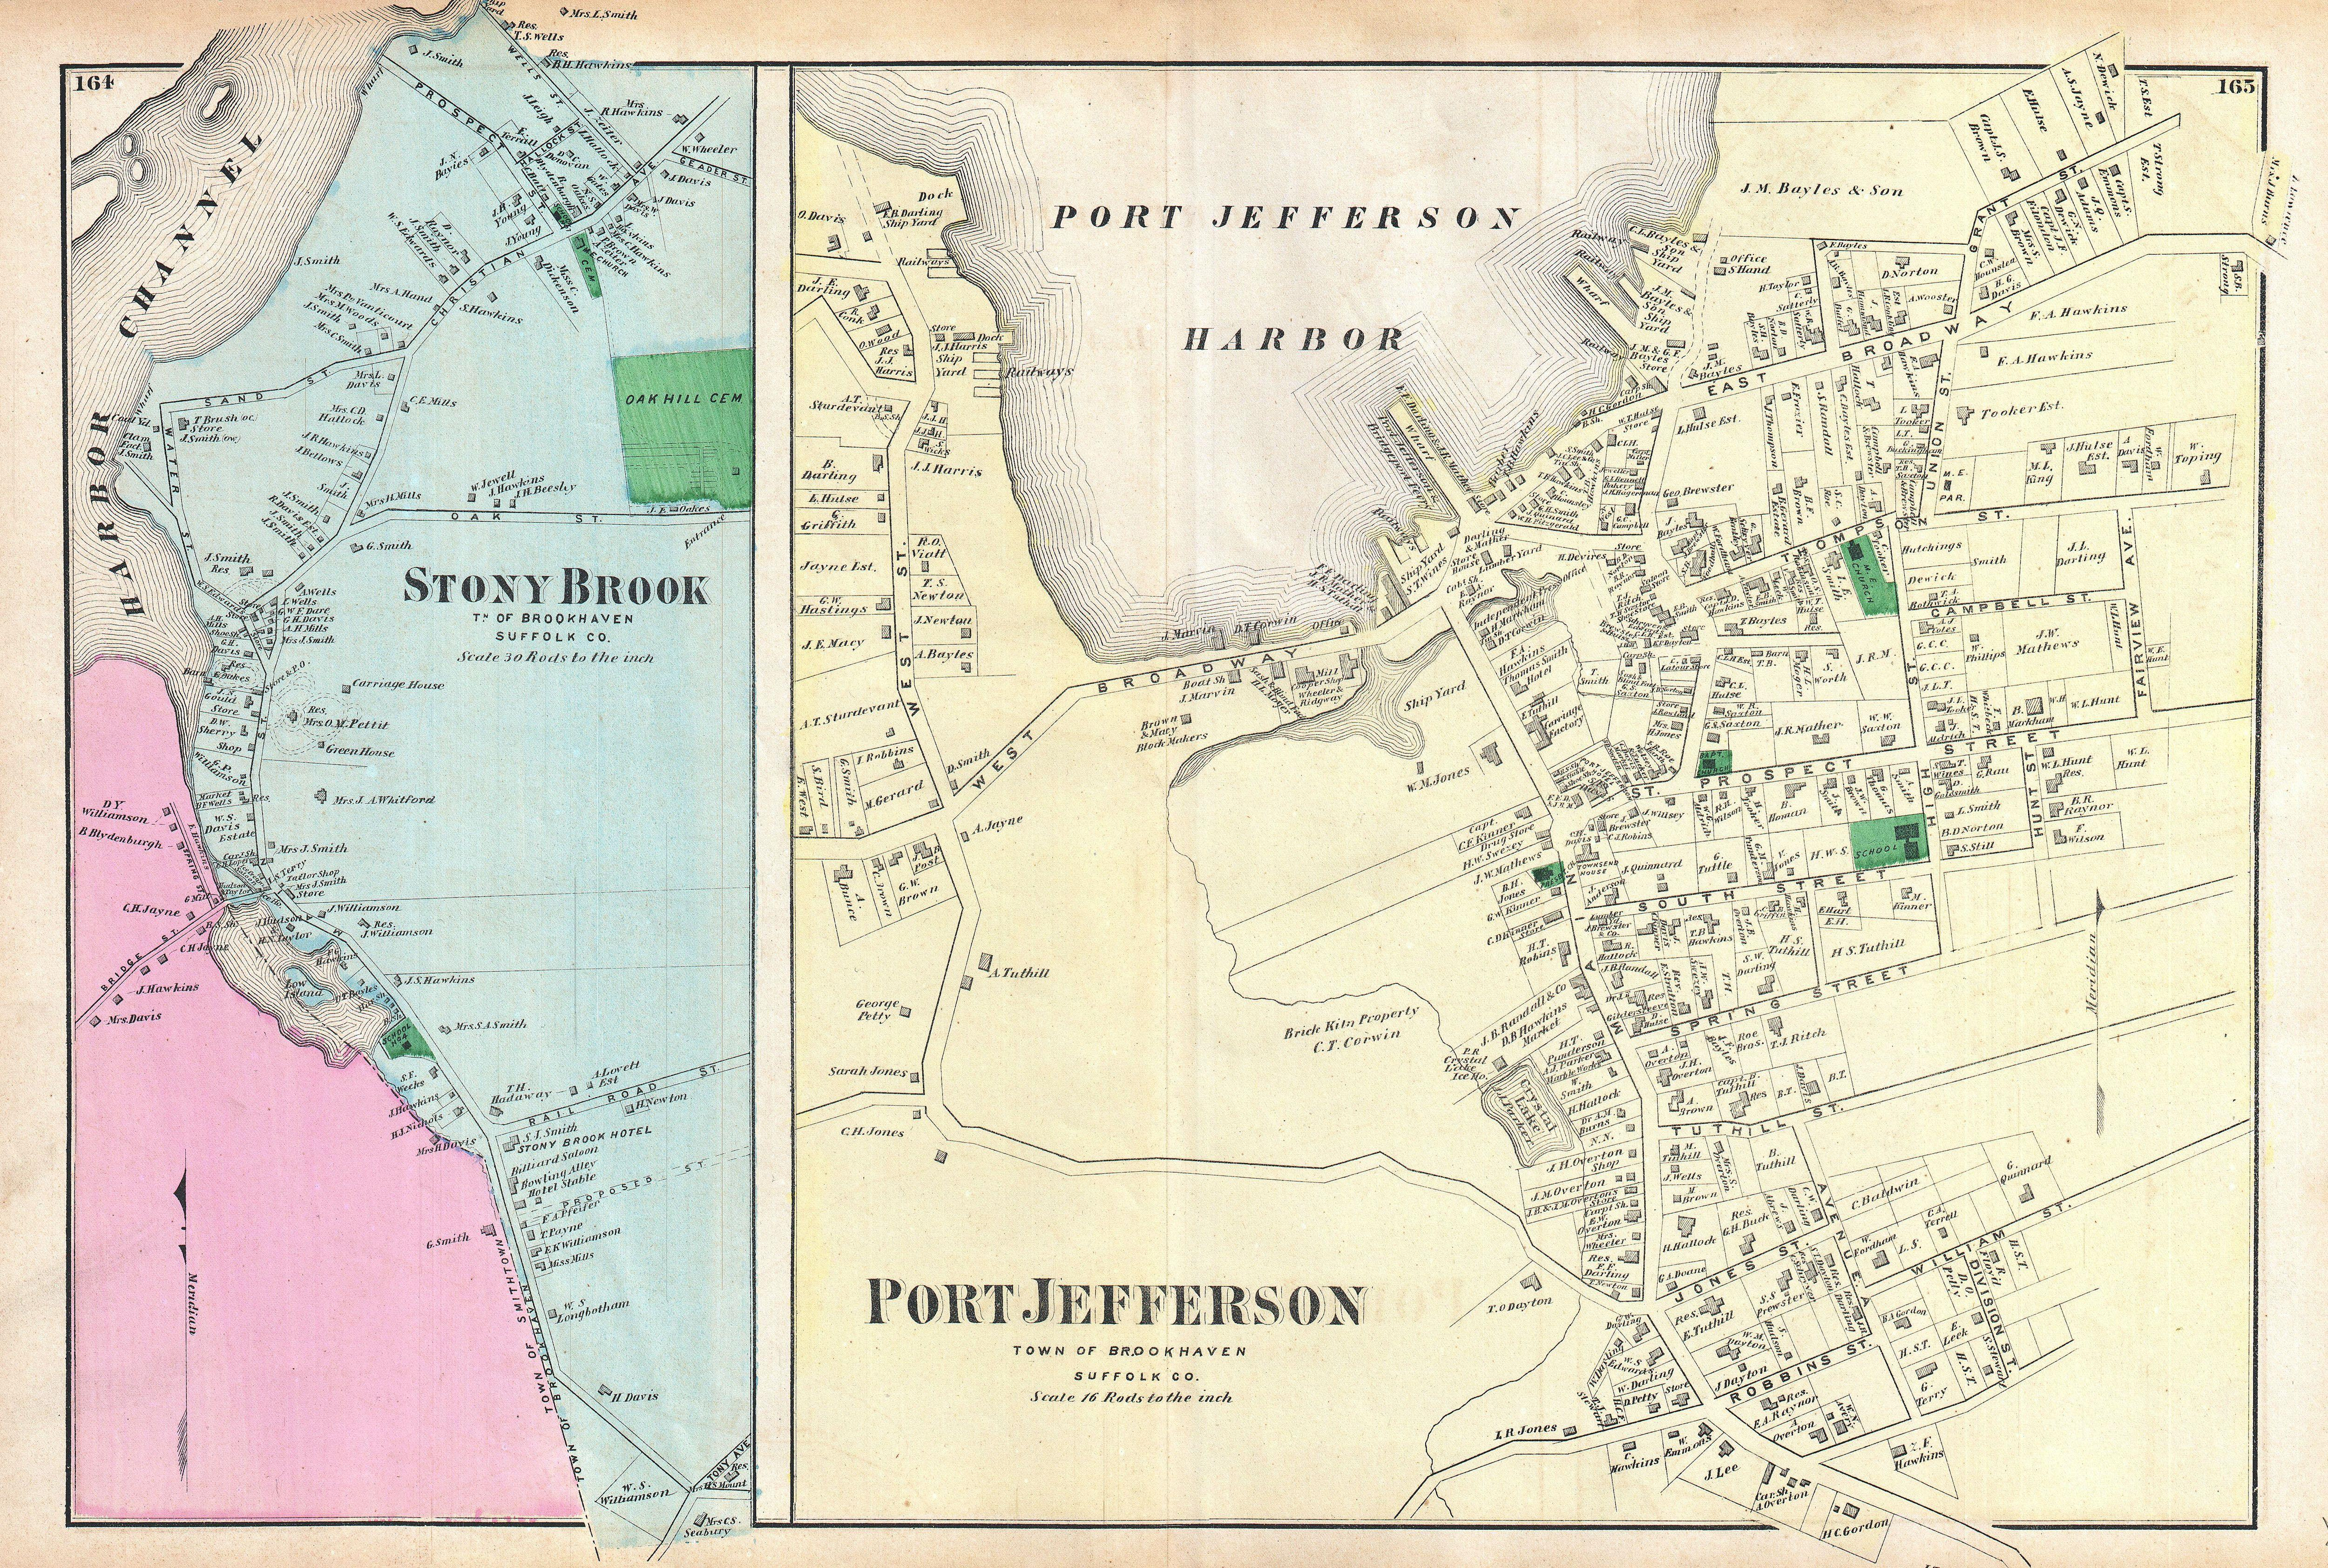 stony brook new york map File 1873 Beers Map Of Stony Brook And Port Jefferson Long Island